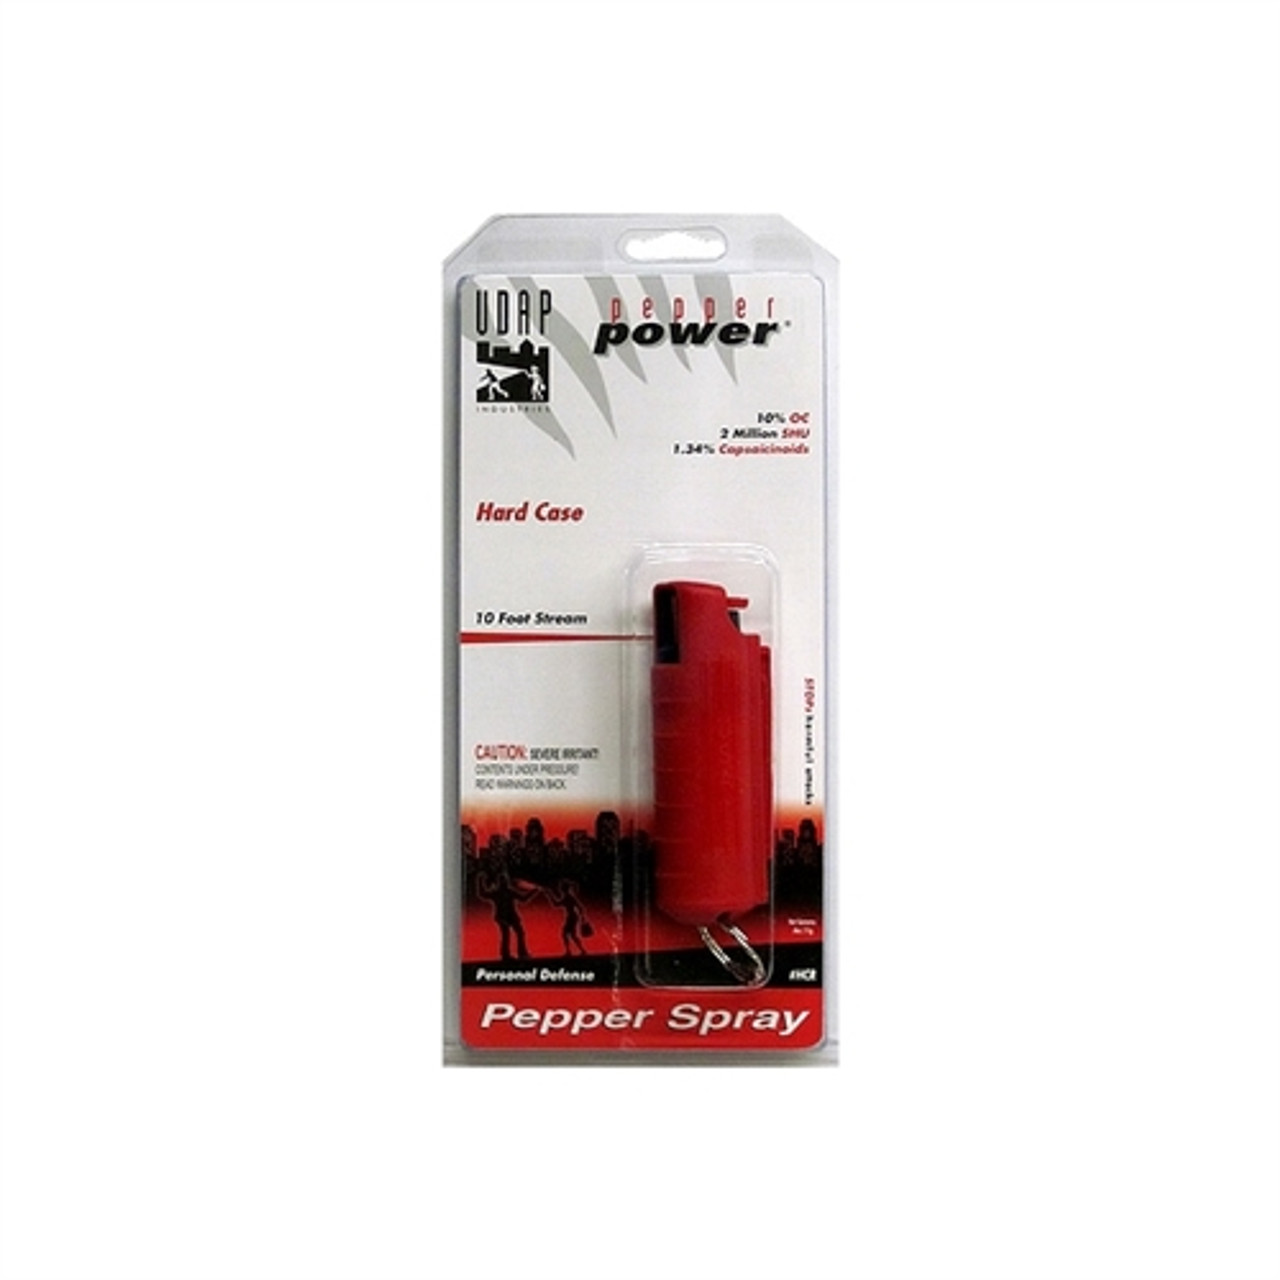 UDAP Industries Pepper Spray, with Red Hard Case